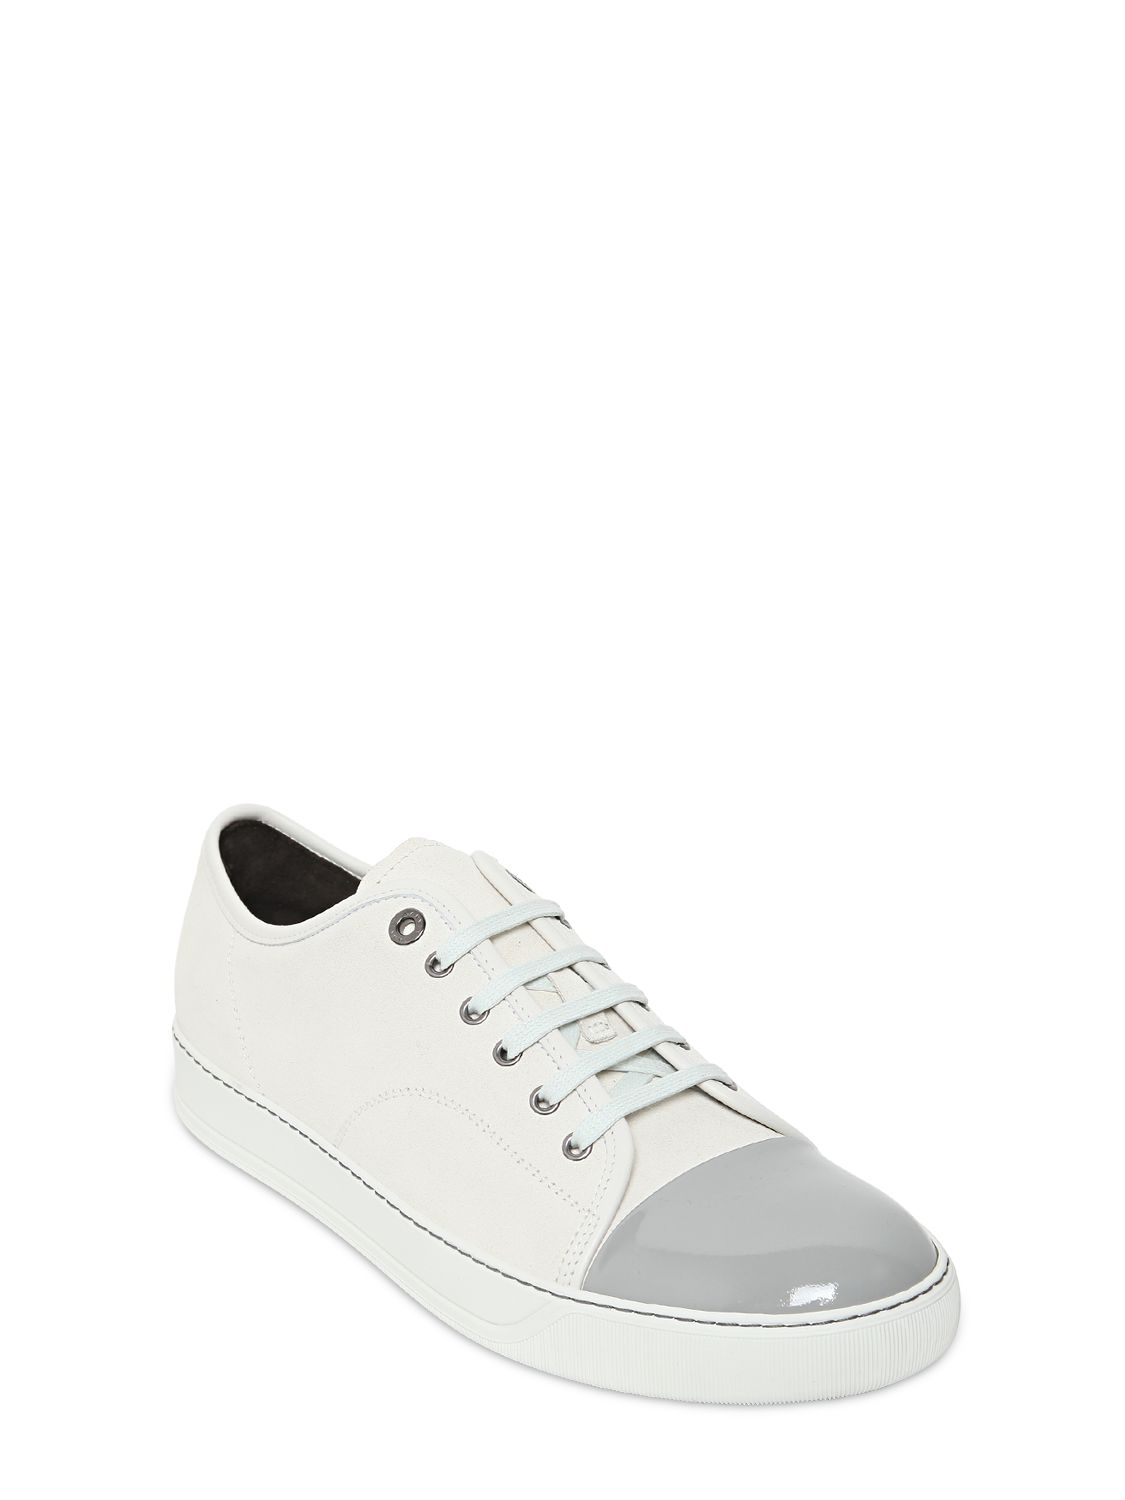 panelled sneakers - White Lanvin